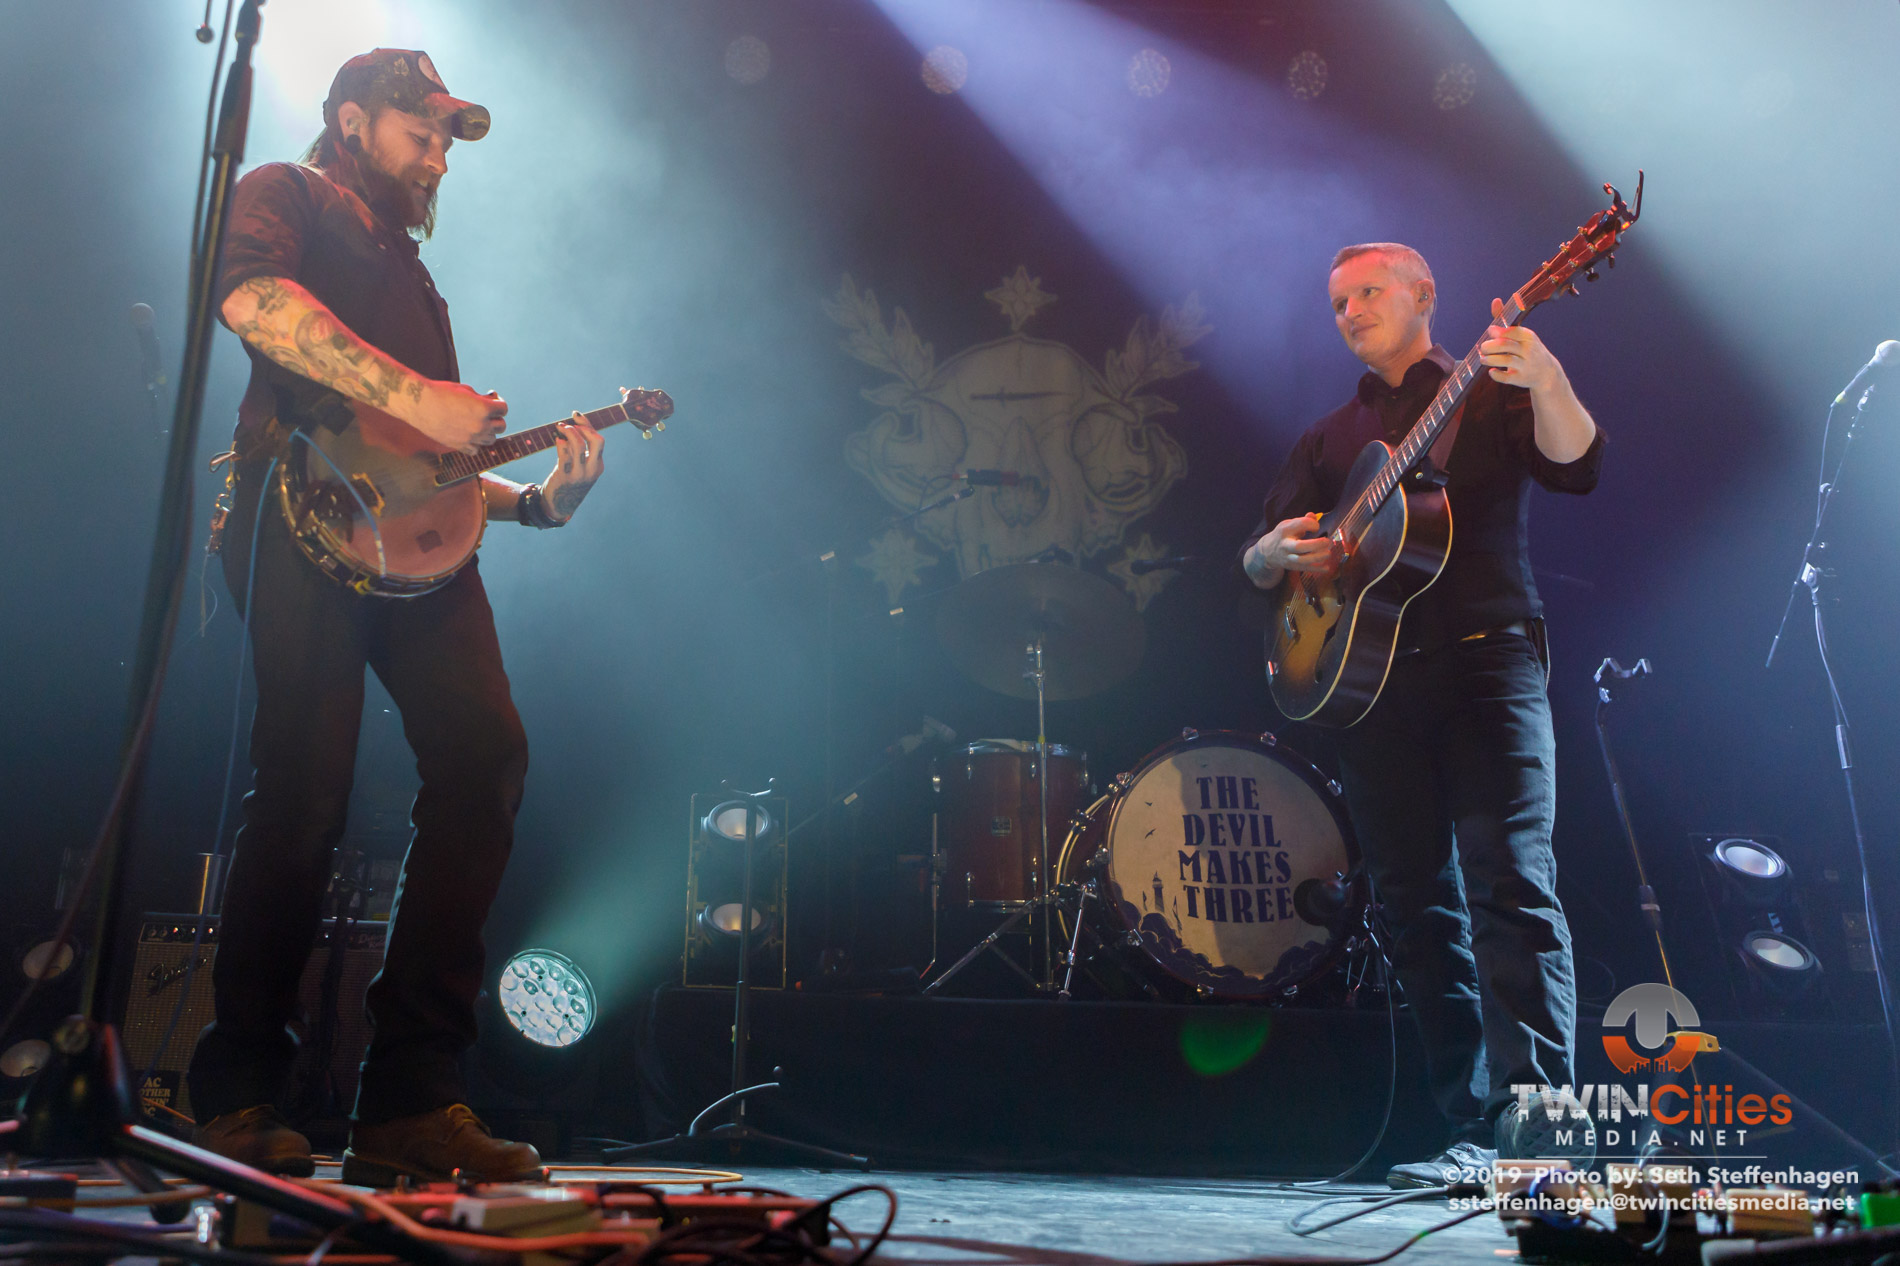 February 1, 2019 - Minneapolis, Minnesota, United States - The Devil Makes Three live in concert at First Avenue along with Lost Dog Street Band as the opener.(Photo by Seth Steffenhagen/Steffenhagen Photography)